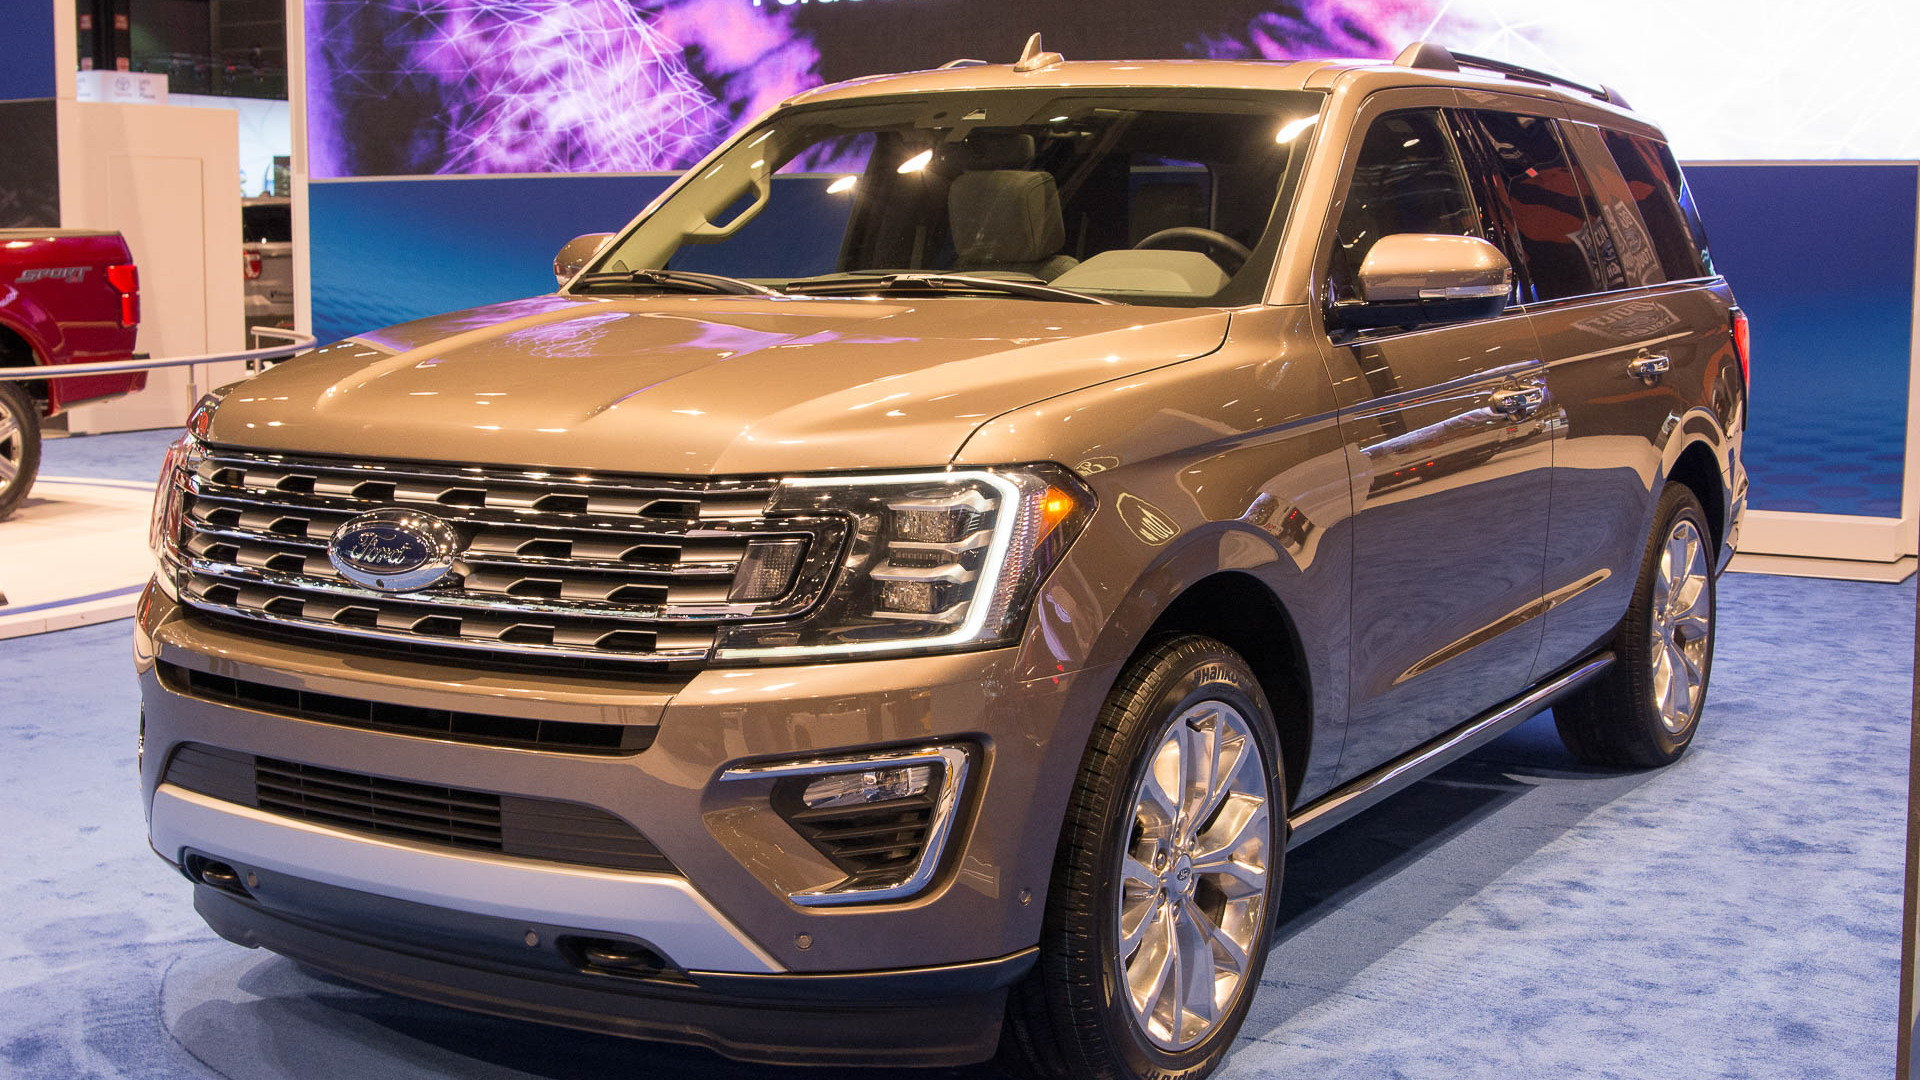 2018 Ford Expedition, 2017 Chicago auto show